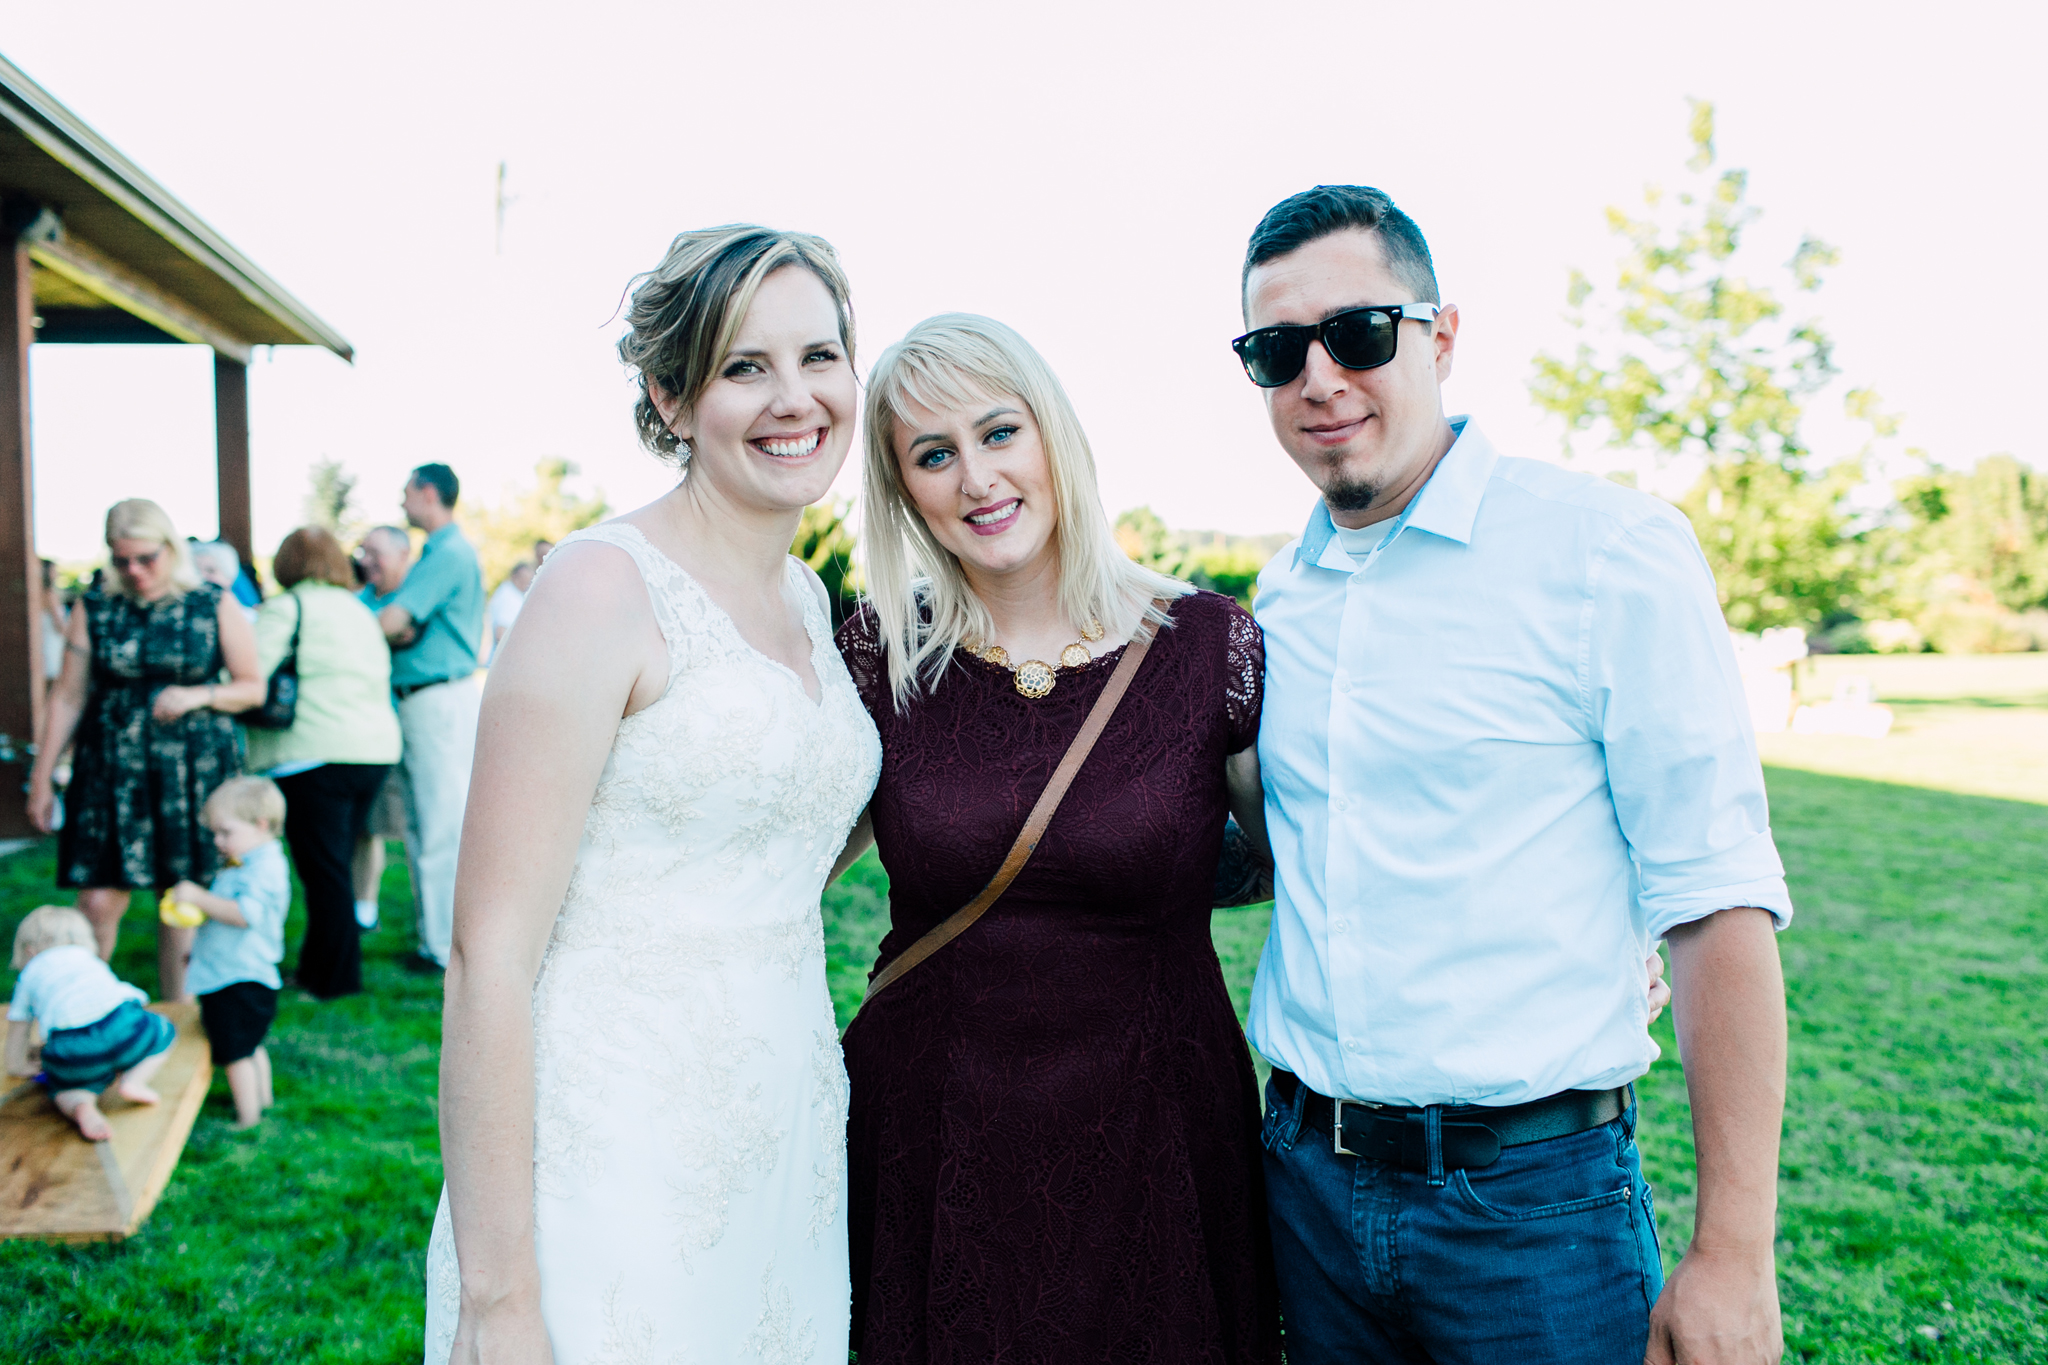 074-bellingham-wedding-photographer-samson-winery-katheryn-moran.jpg